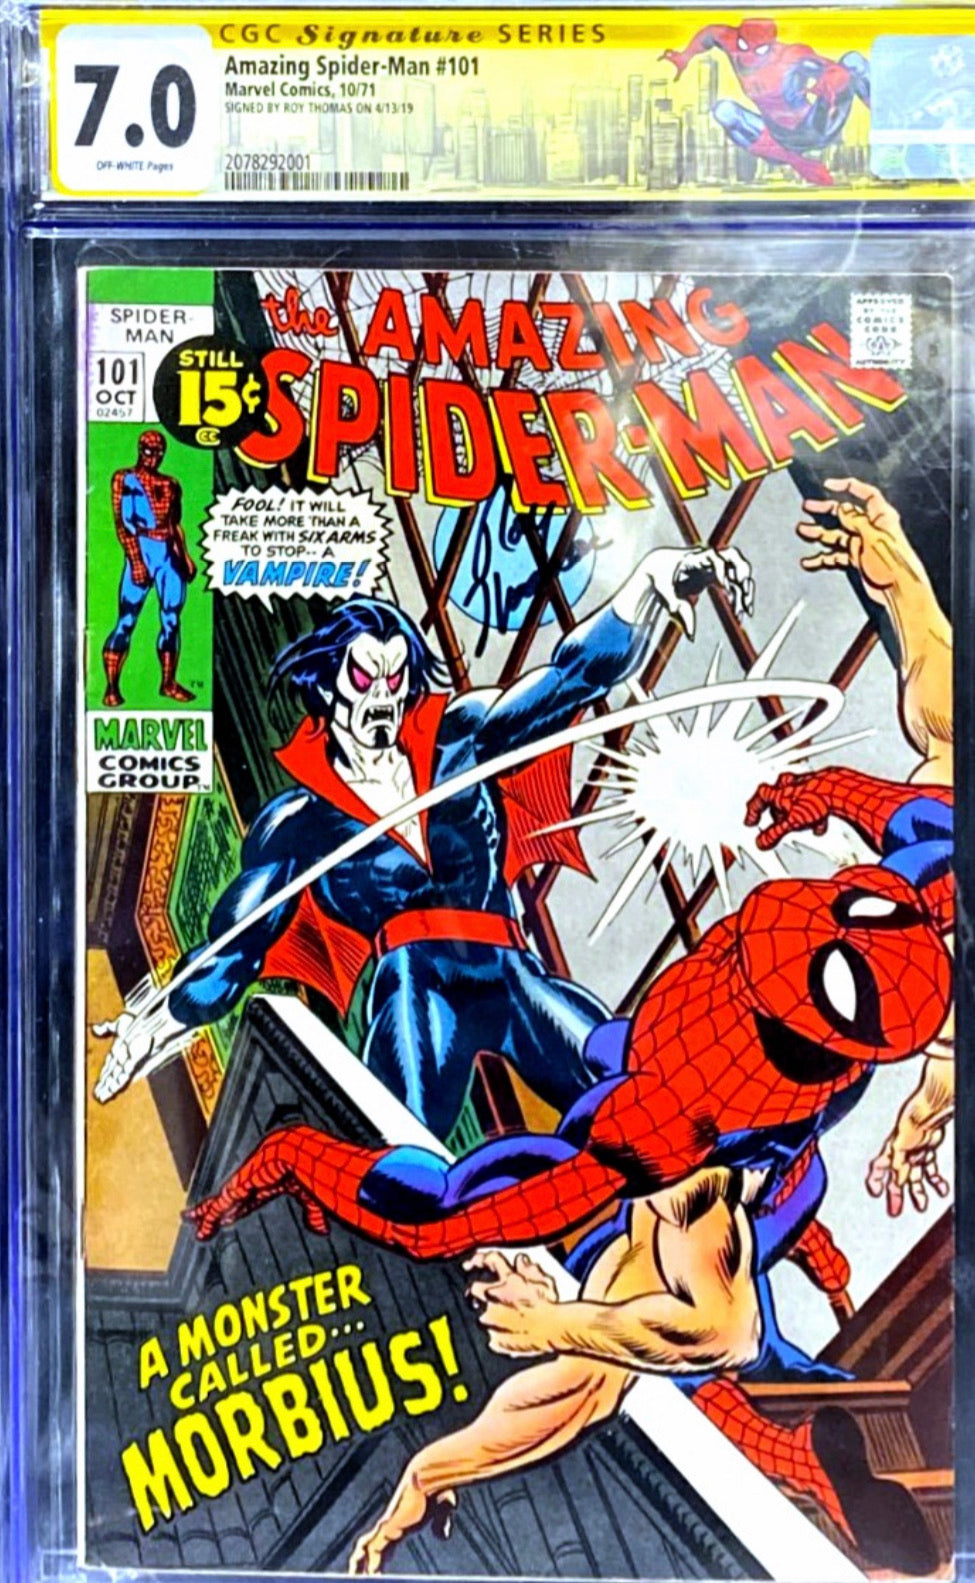 Amazing Spider-Man 101 CGC Signature Series 7.0